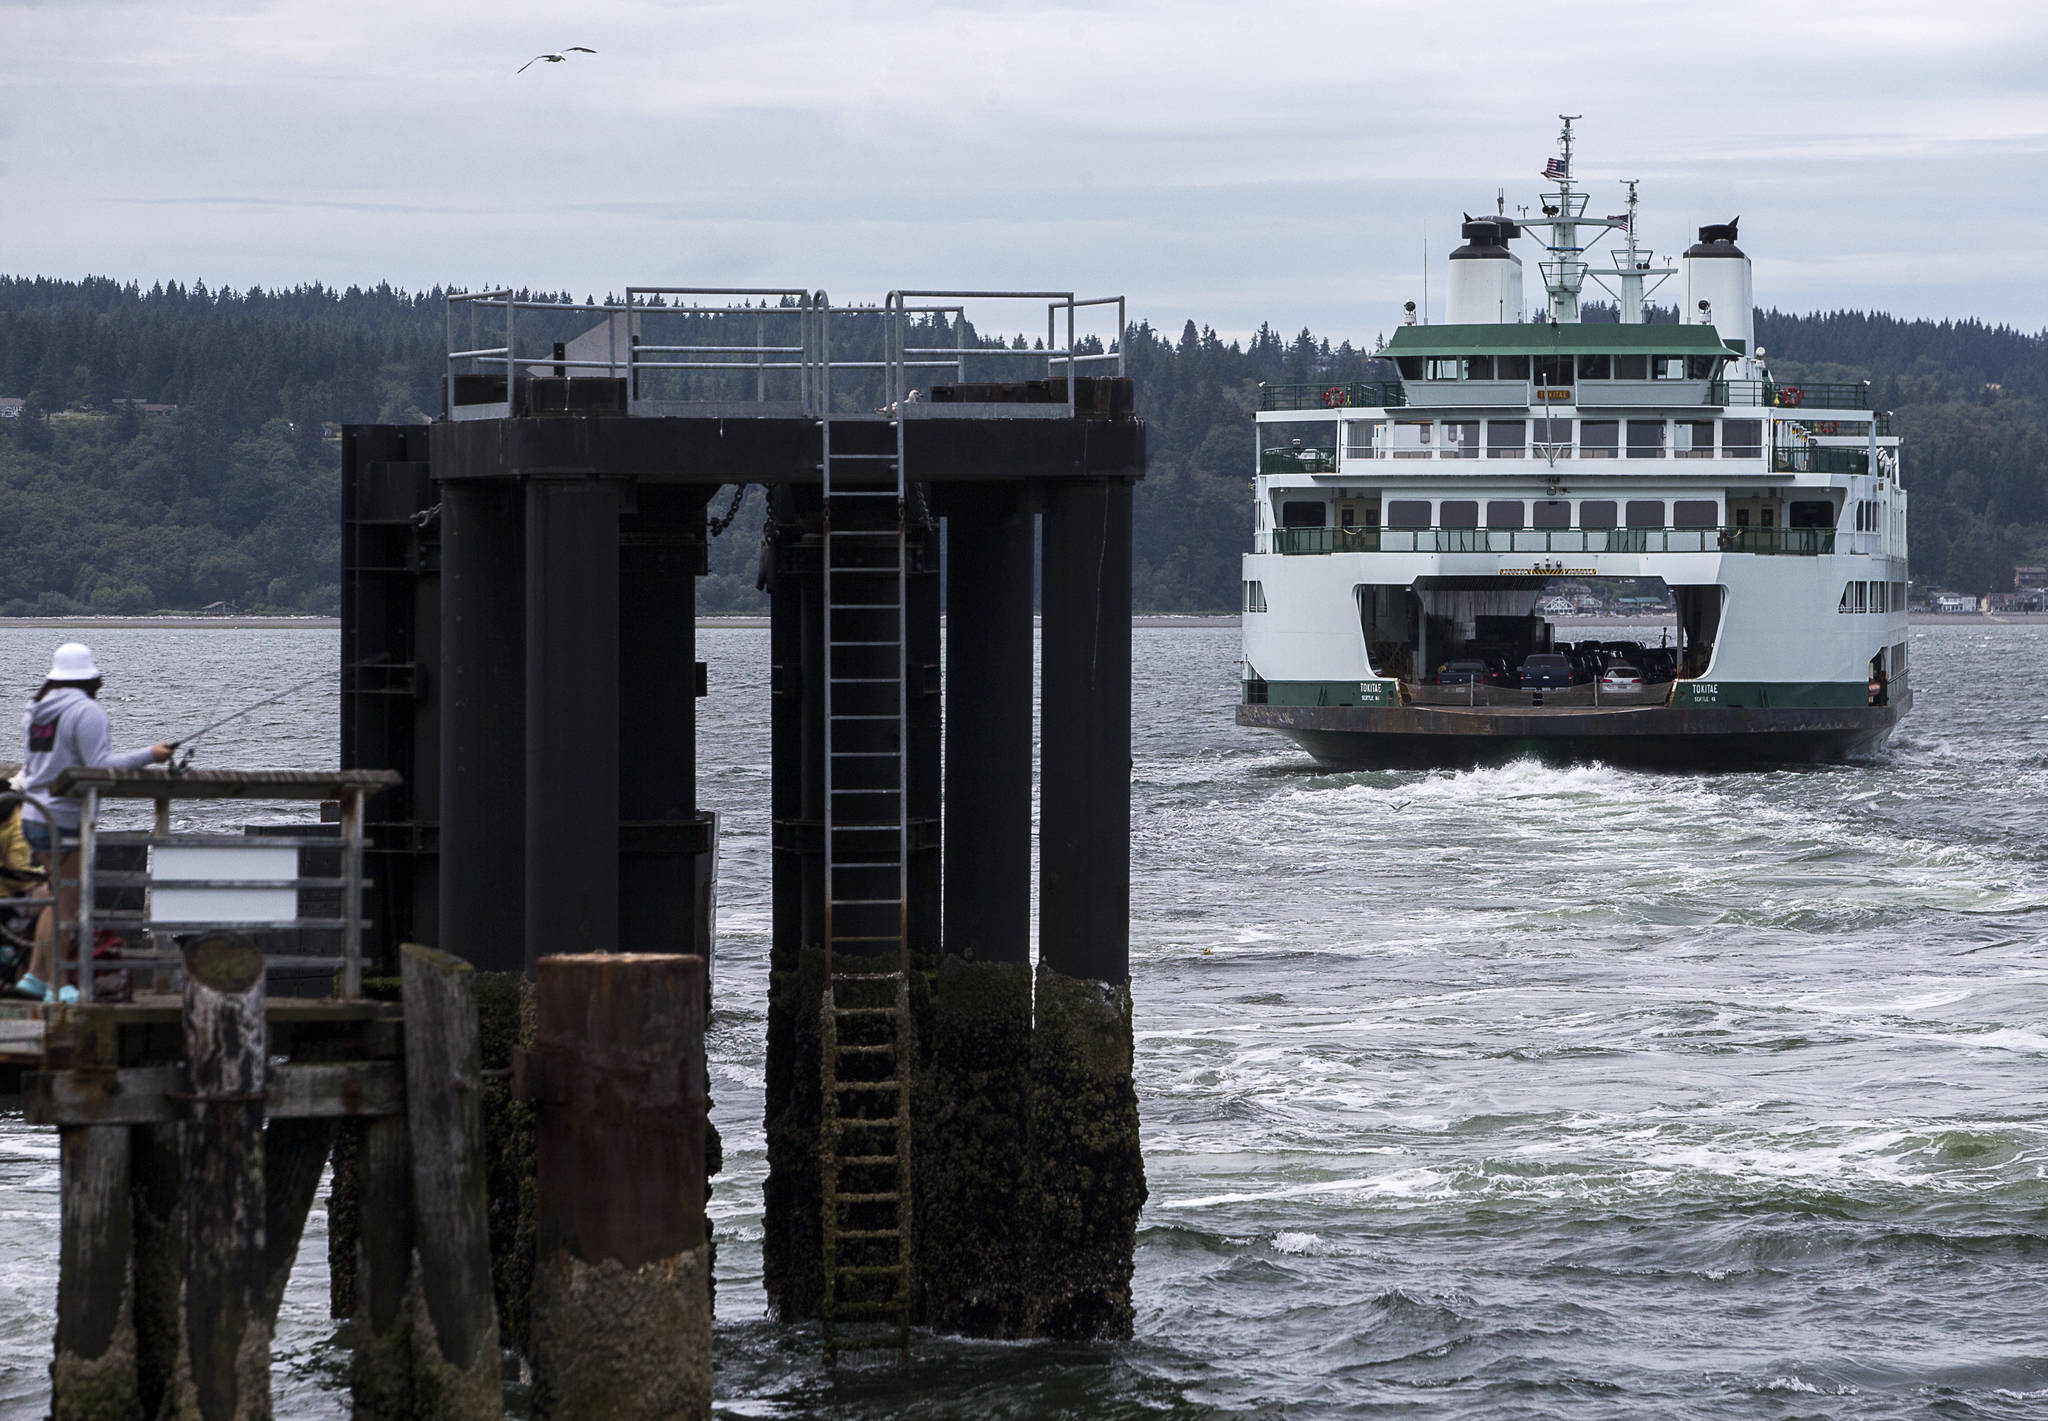 A ferry pulls away from the dock in Mukilteo last Friday. (Olivia Vanni / The Herald)